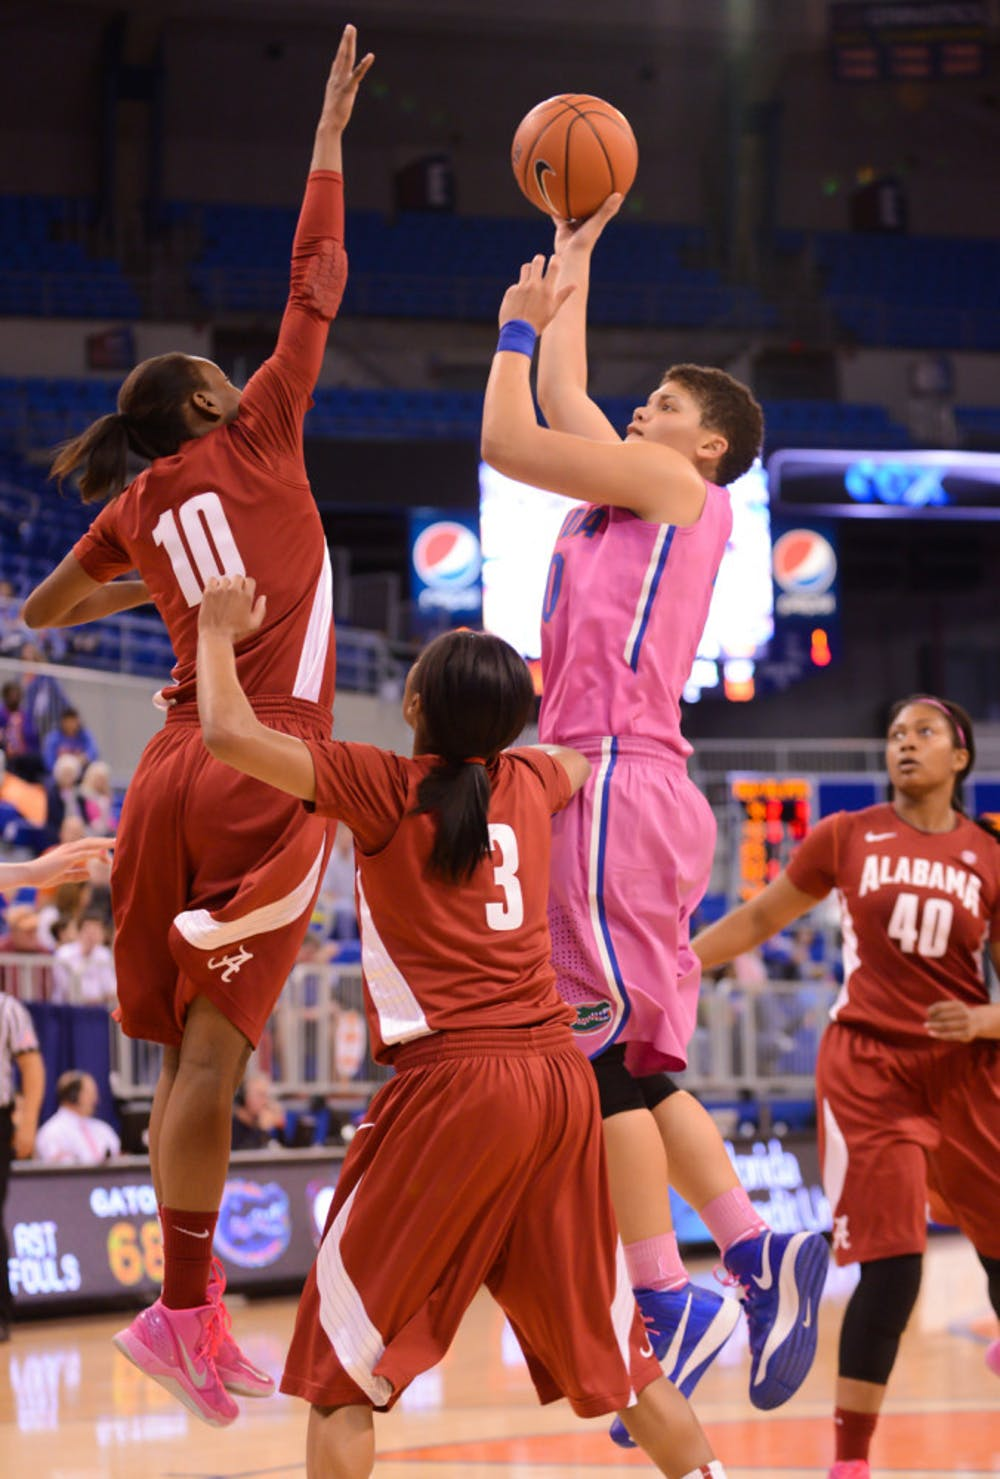 <p>Sydney Moss attempts a layup during Florida's 87-54 victory against Alabama at the Stephen C. O'Connell Center on Feb. 3.</p>